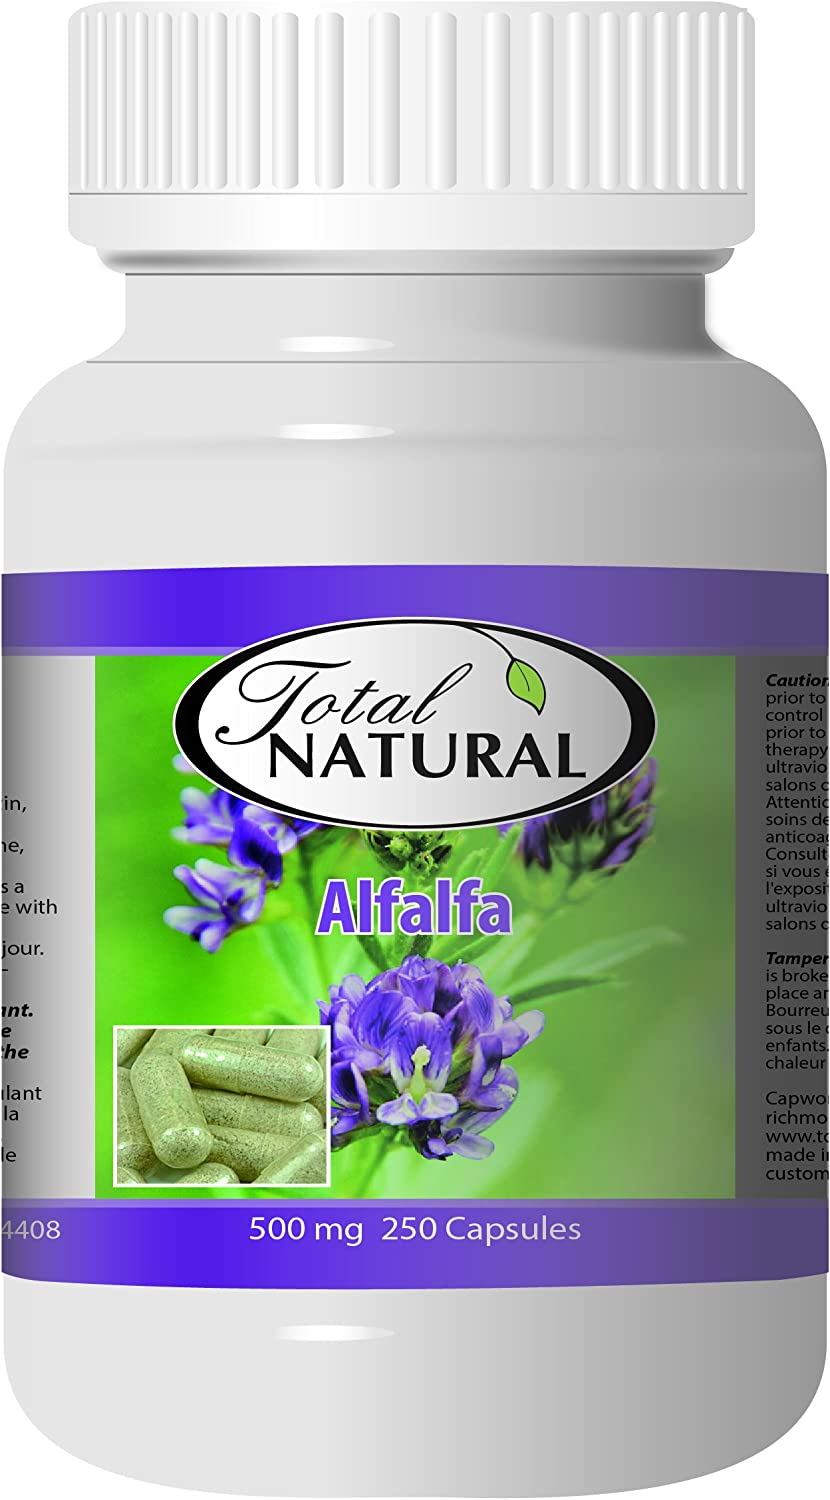 Alfalfa Organic Supplement 500mg 250 Capsules 2 Bottles by Total Natural, Premium Wild Harvest Alfalfa Tablets for Regulating Cholesterol, Acid-Base Balance